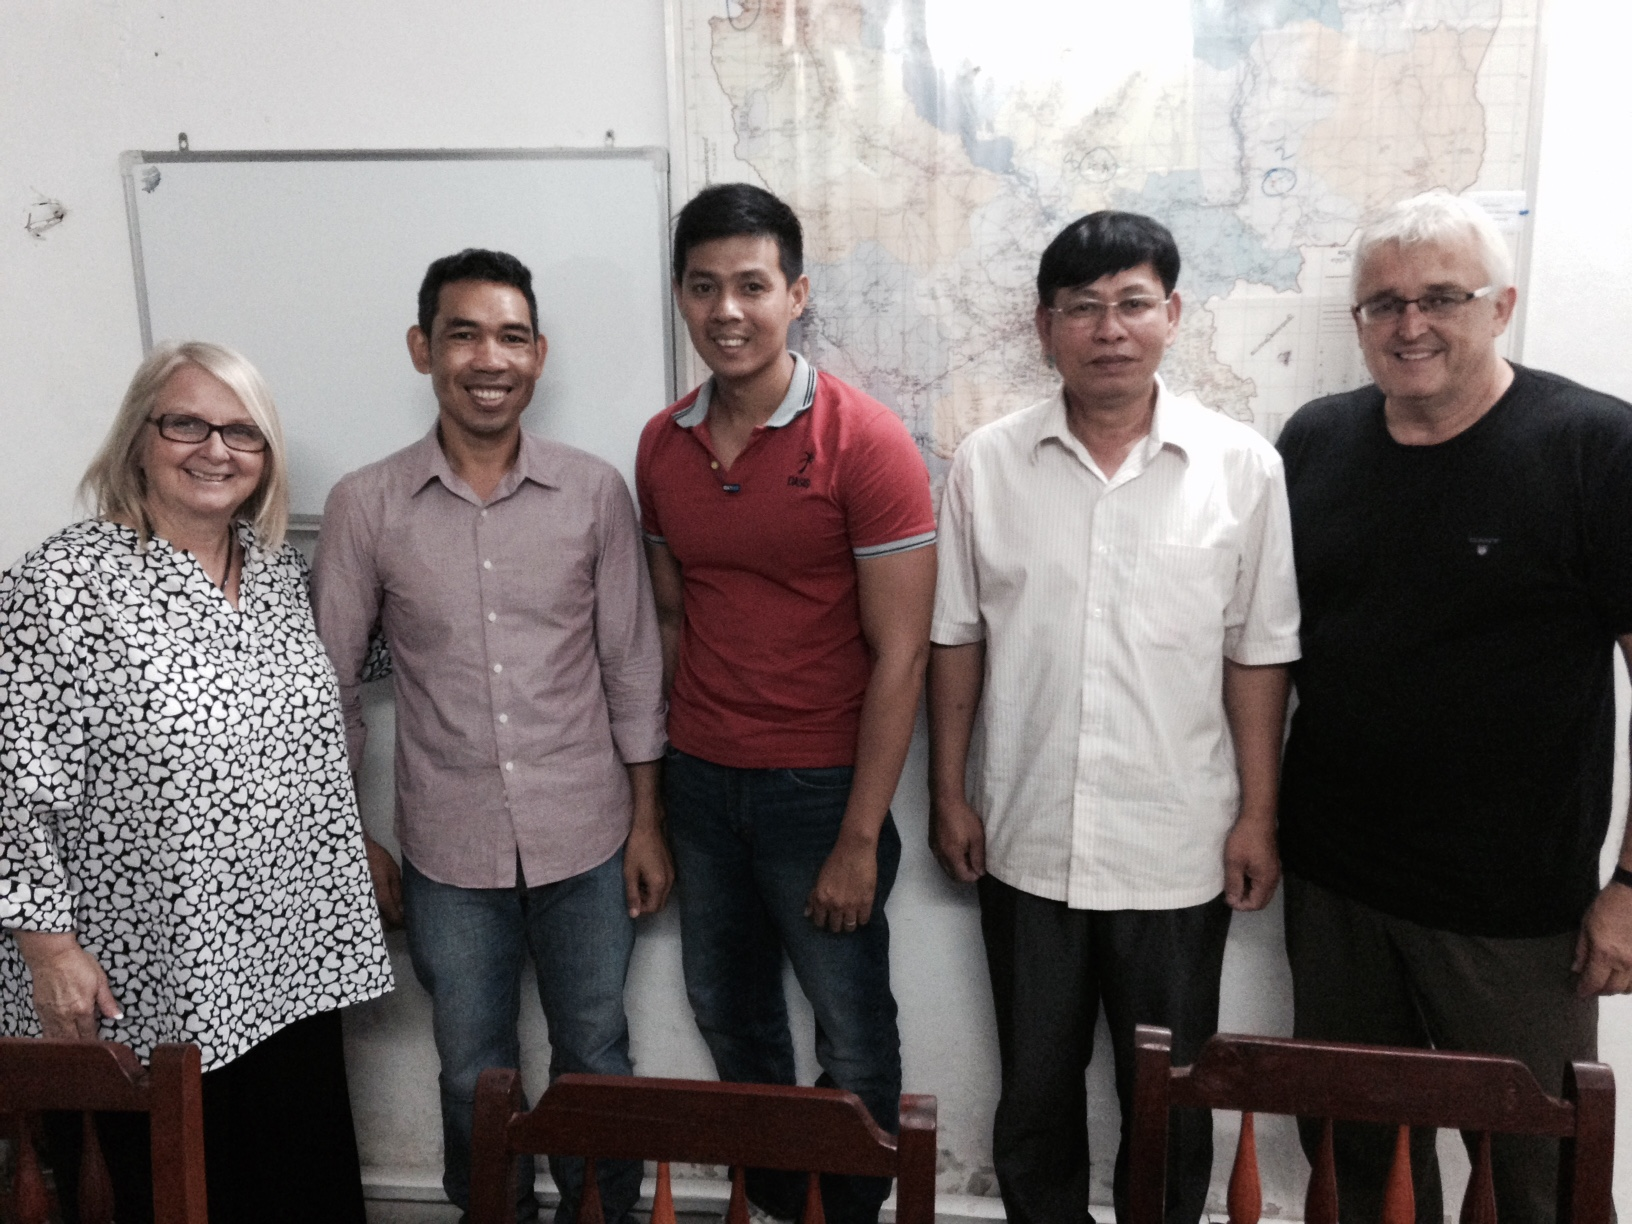 After the conference and a bite to eat, we meet with this group of leaders (including Pastor Chuck McCaul at the far right, who has served in Cambodia for almost 20 yrs).  They make up the Missions team that oversees New Life's church-planting efforts, which CLC supports on a monthly basis.